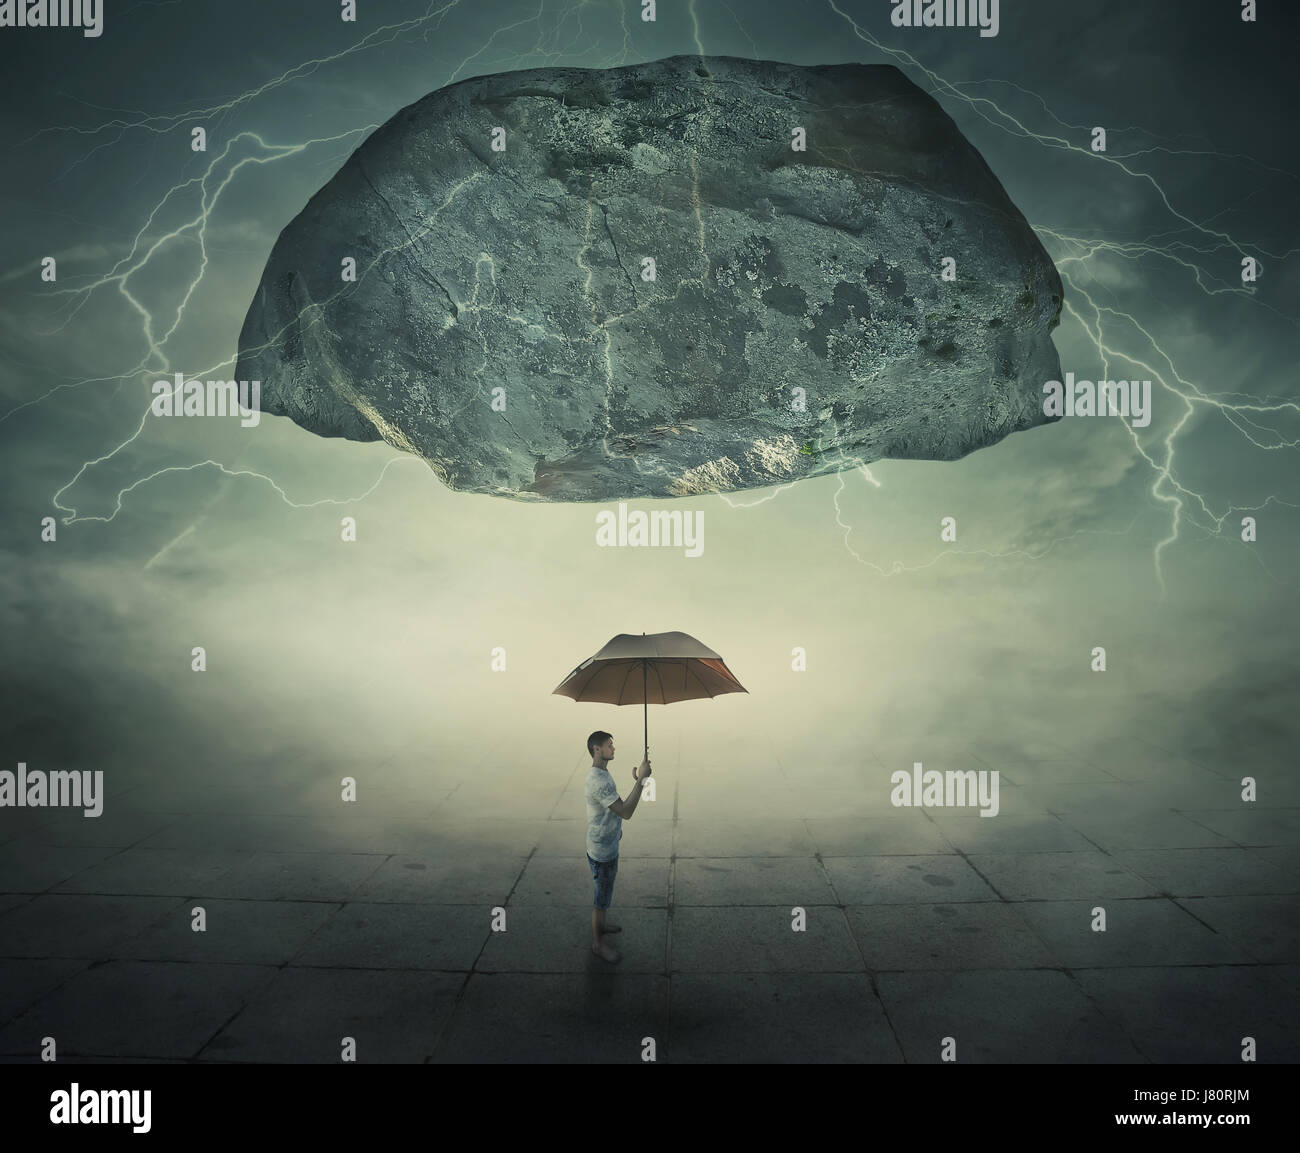 Surrealistic image as a man stand in a foggy street under a huge levitating rock, holding an umbrella in hand as - Stock Image